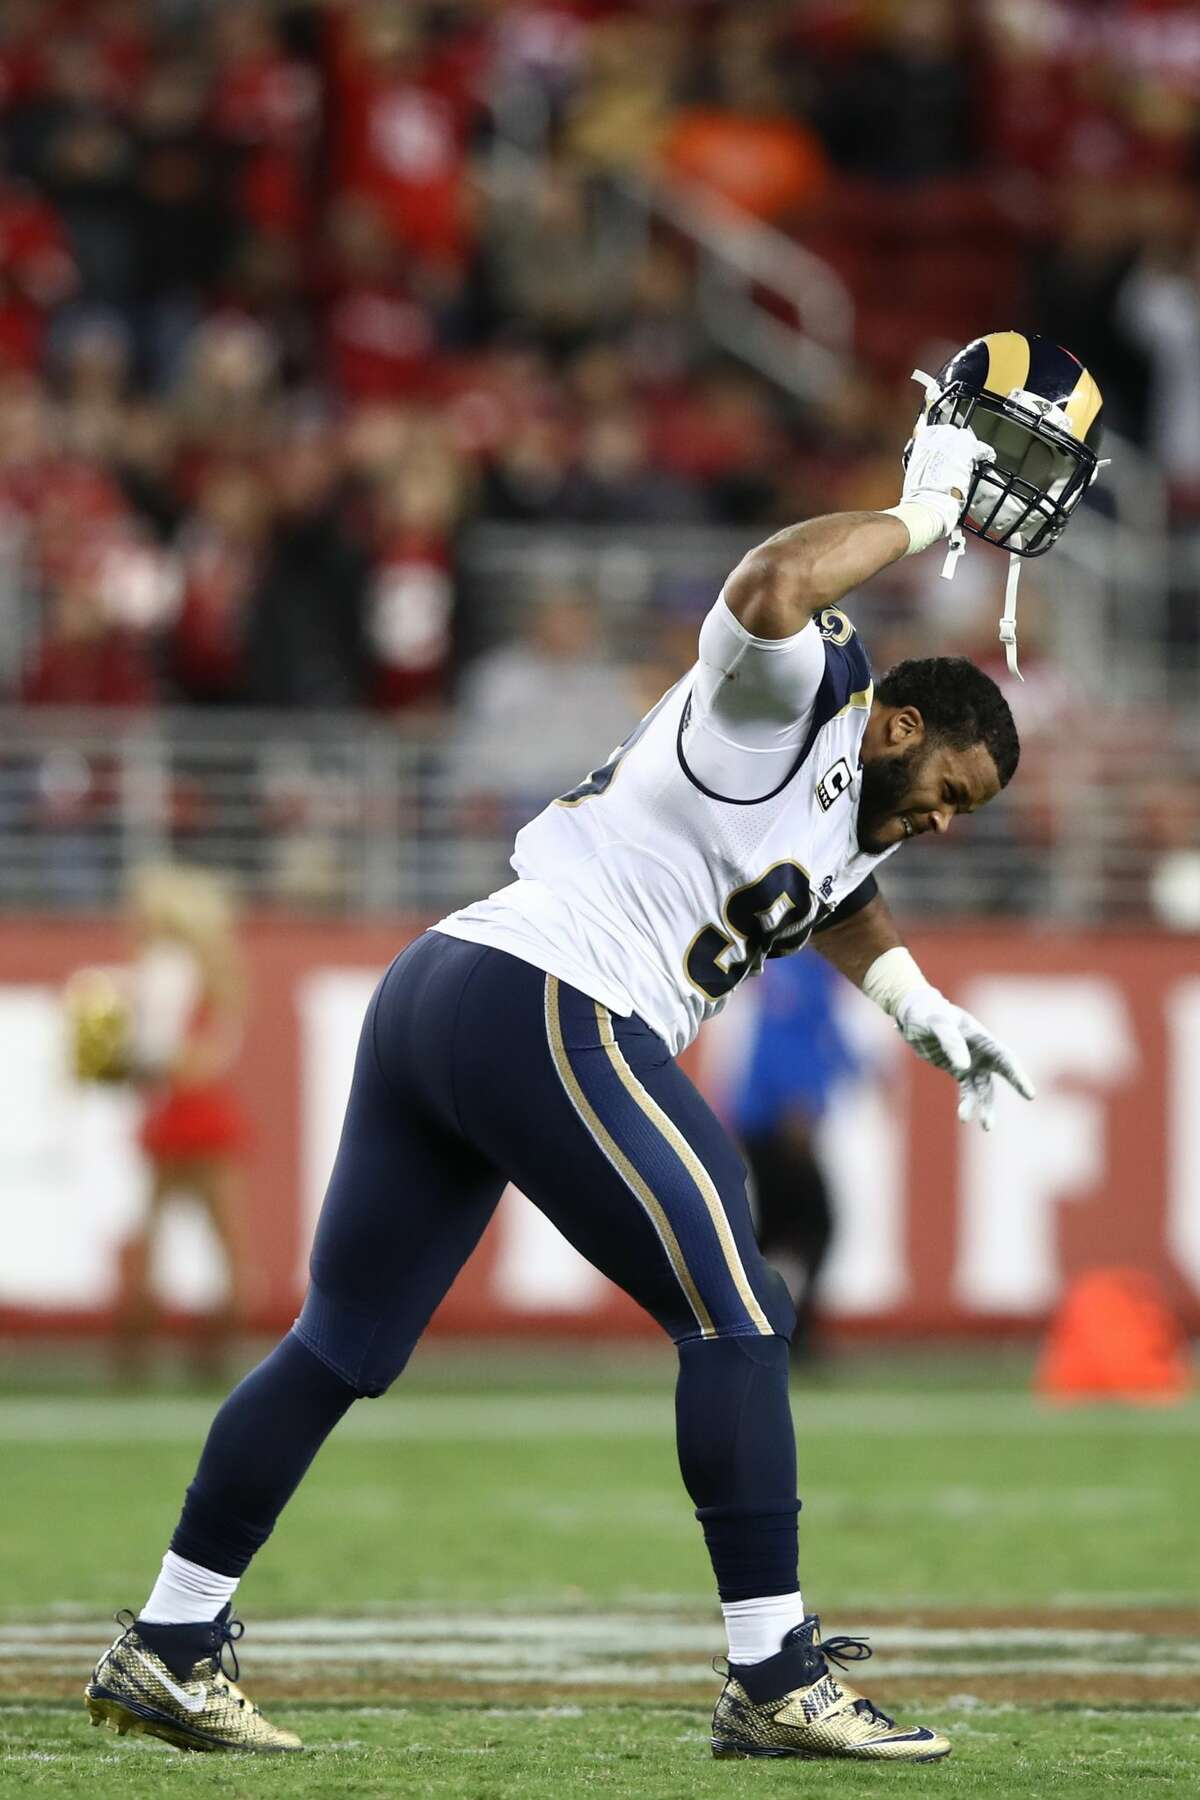 Aaron Donald of the Los Angeles Rams slams his helmet to the turf after being ejected for contact with an official during the NFL game against the San Francisco 49ers at Levi's Stadium on Sept. 12, 2016, in Santa Clara, Calif.